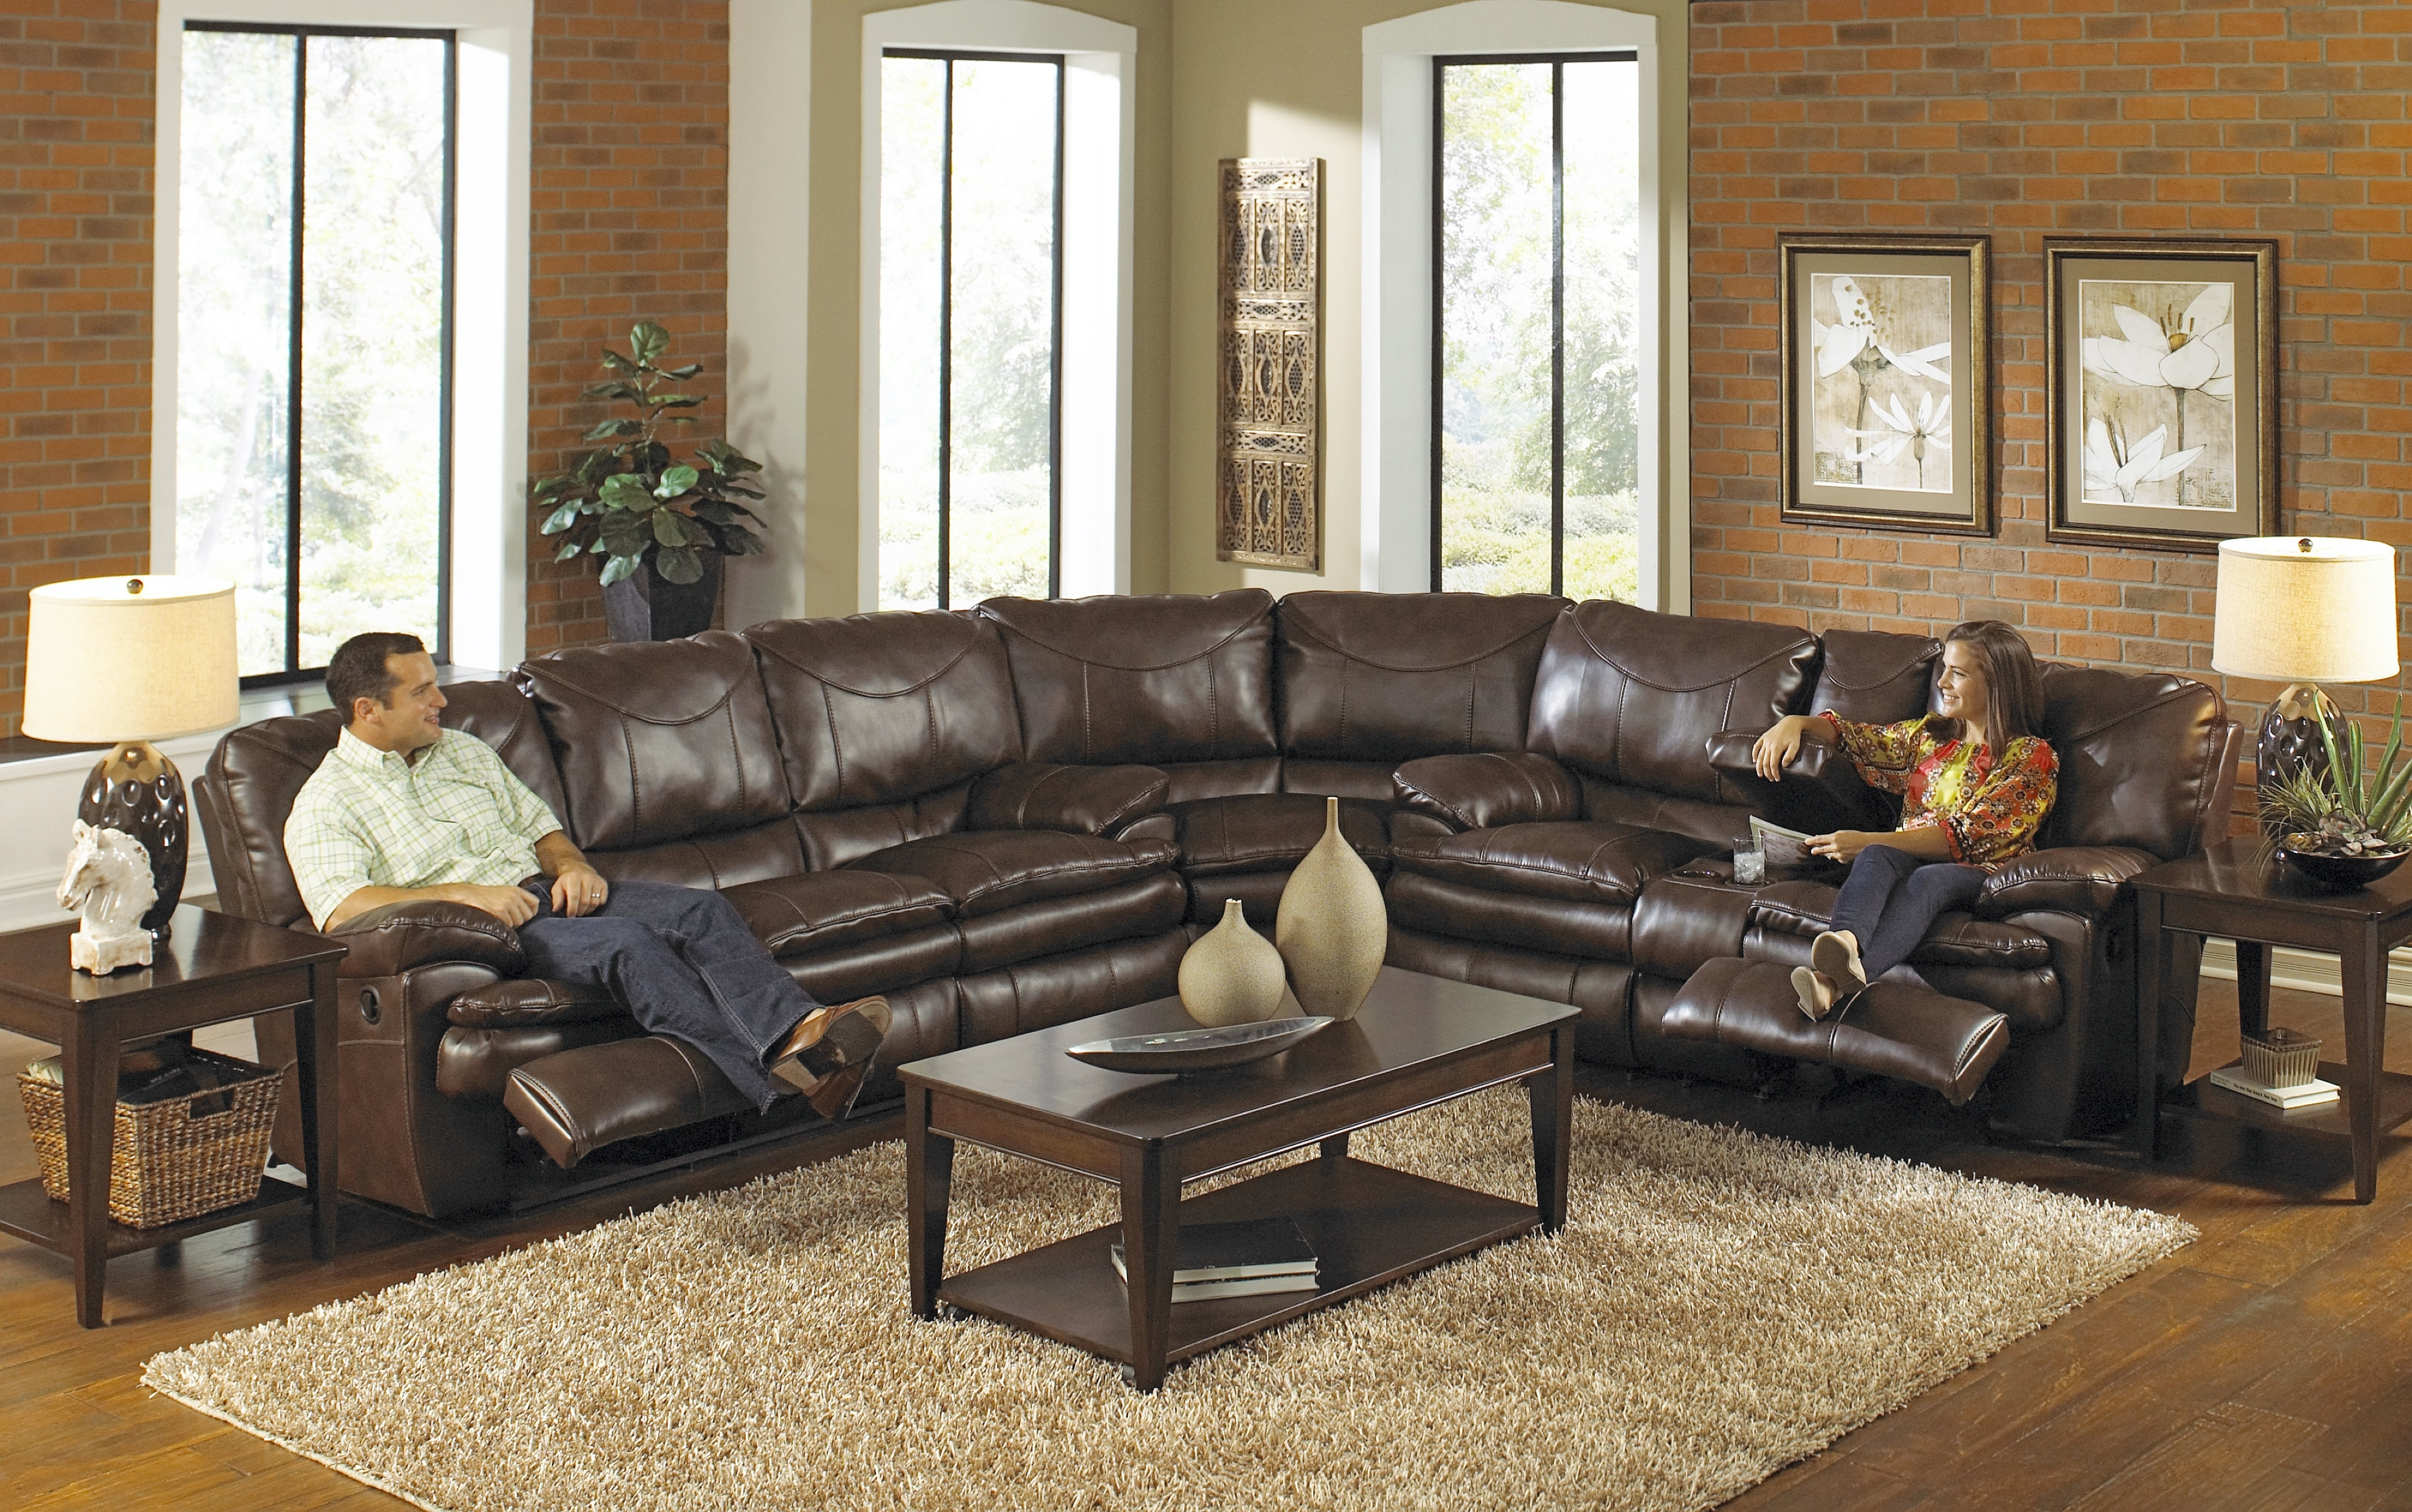 Delivered Sofa With Chaise And Recliner Buy Large Sectional Sofas Pertaining To Virginia Sectional Sofas (View 9 of 10)